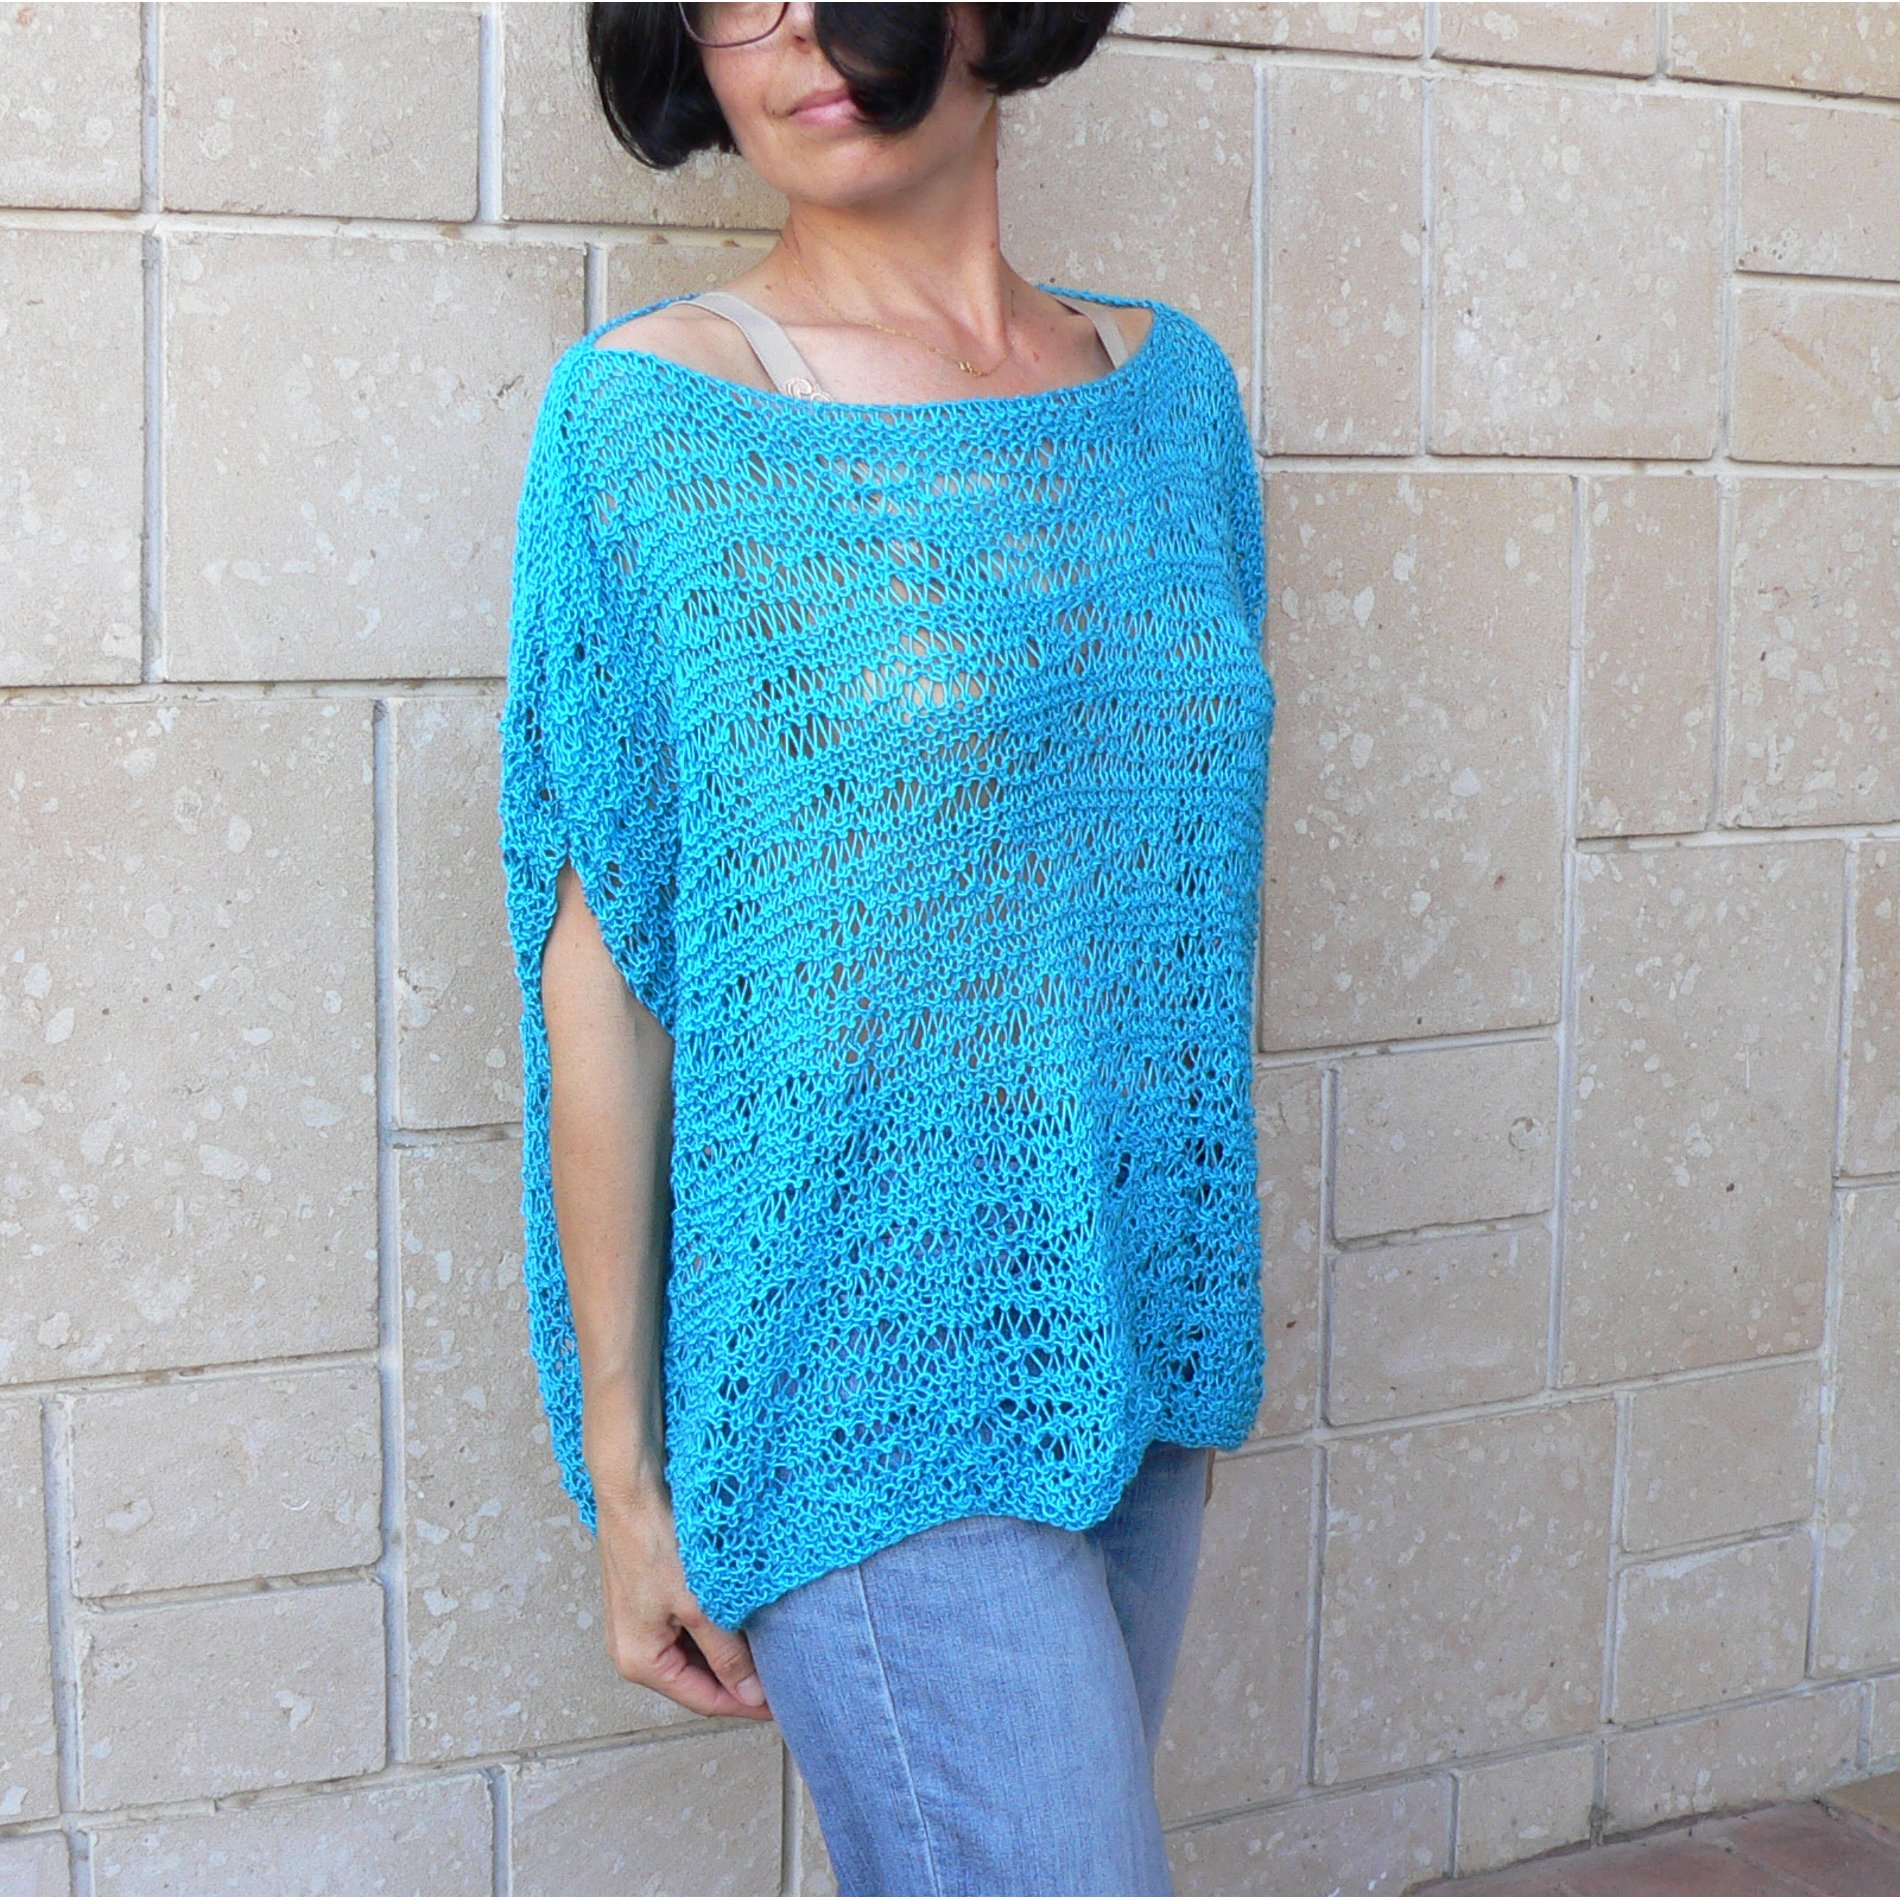 Woman turquoise cotton tunic top #047F